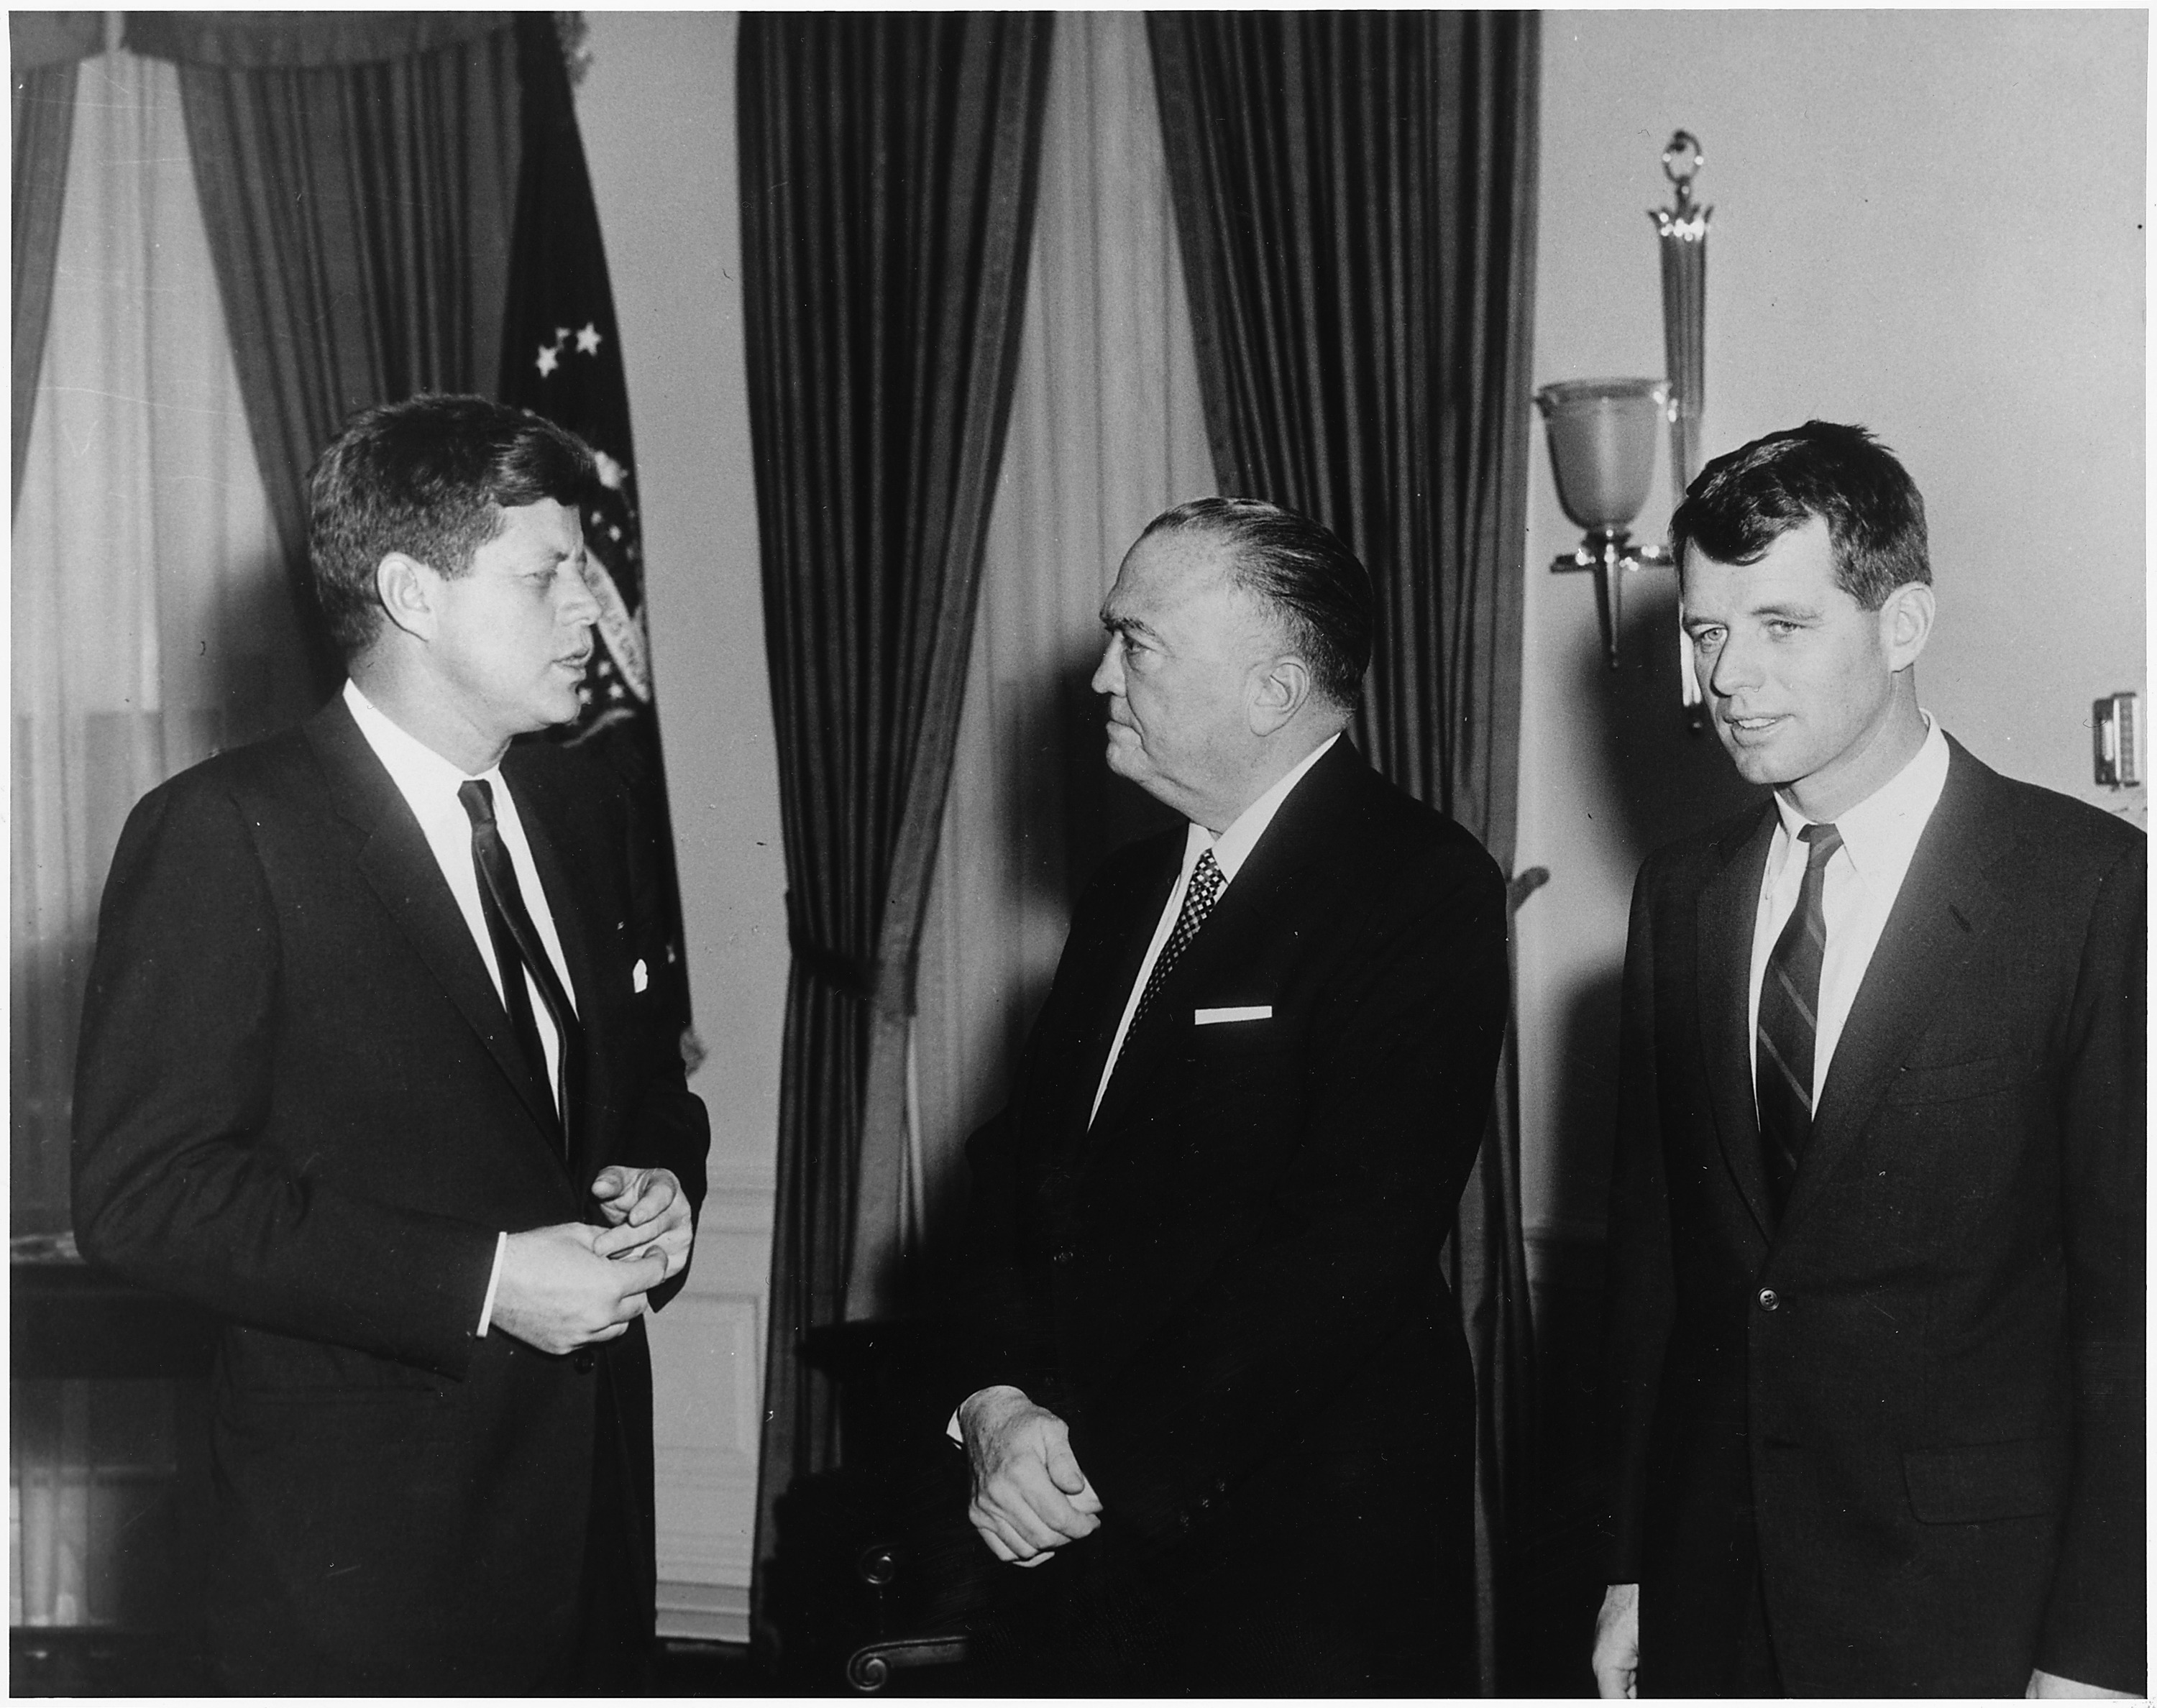 J. Edgar Hoover, pictured in the middle, meets with President John F. Kennedy on the left and Attorney General Bobby Kennedy on the right in 1961.